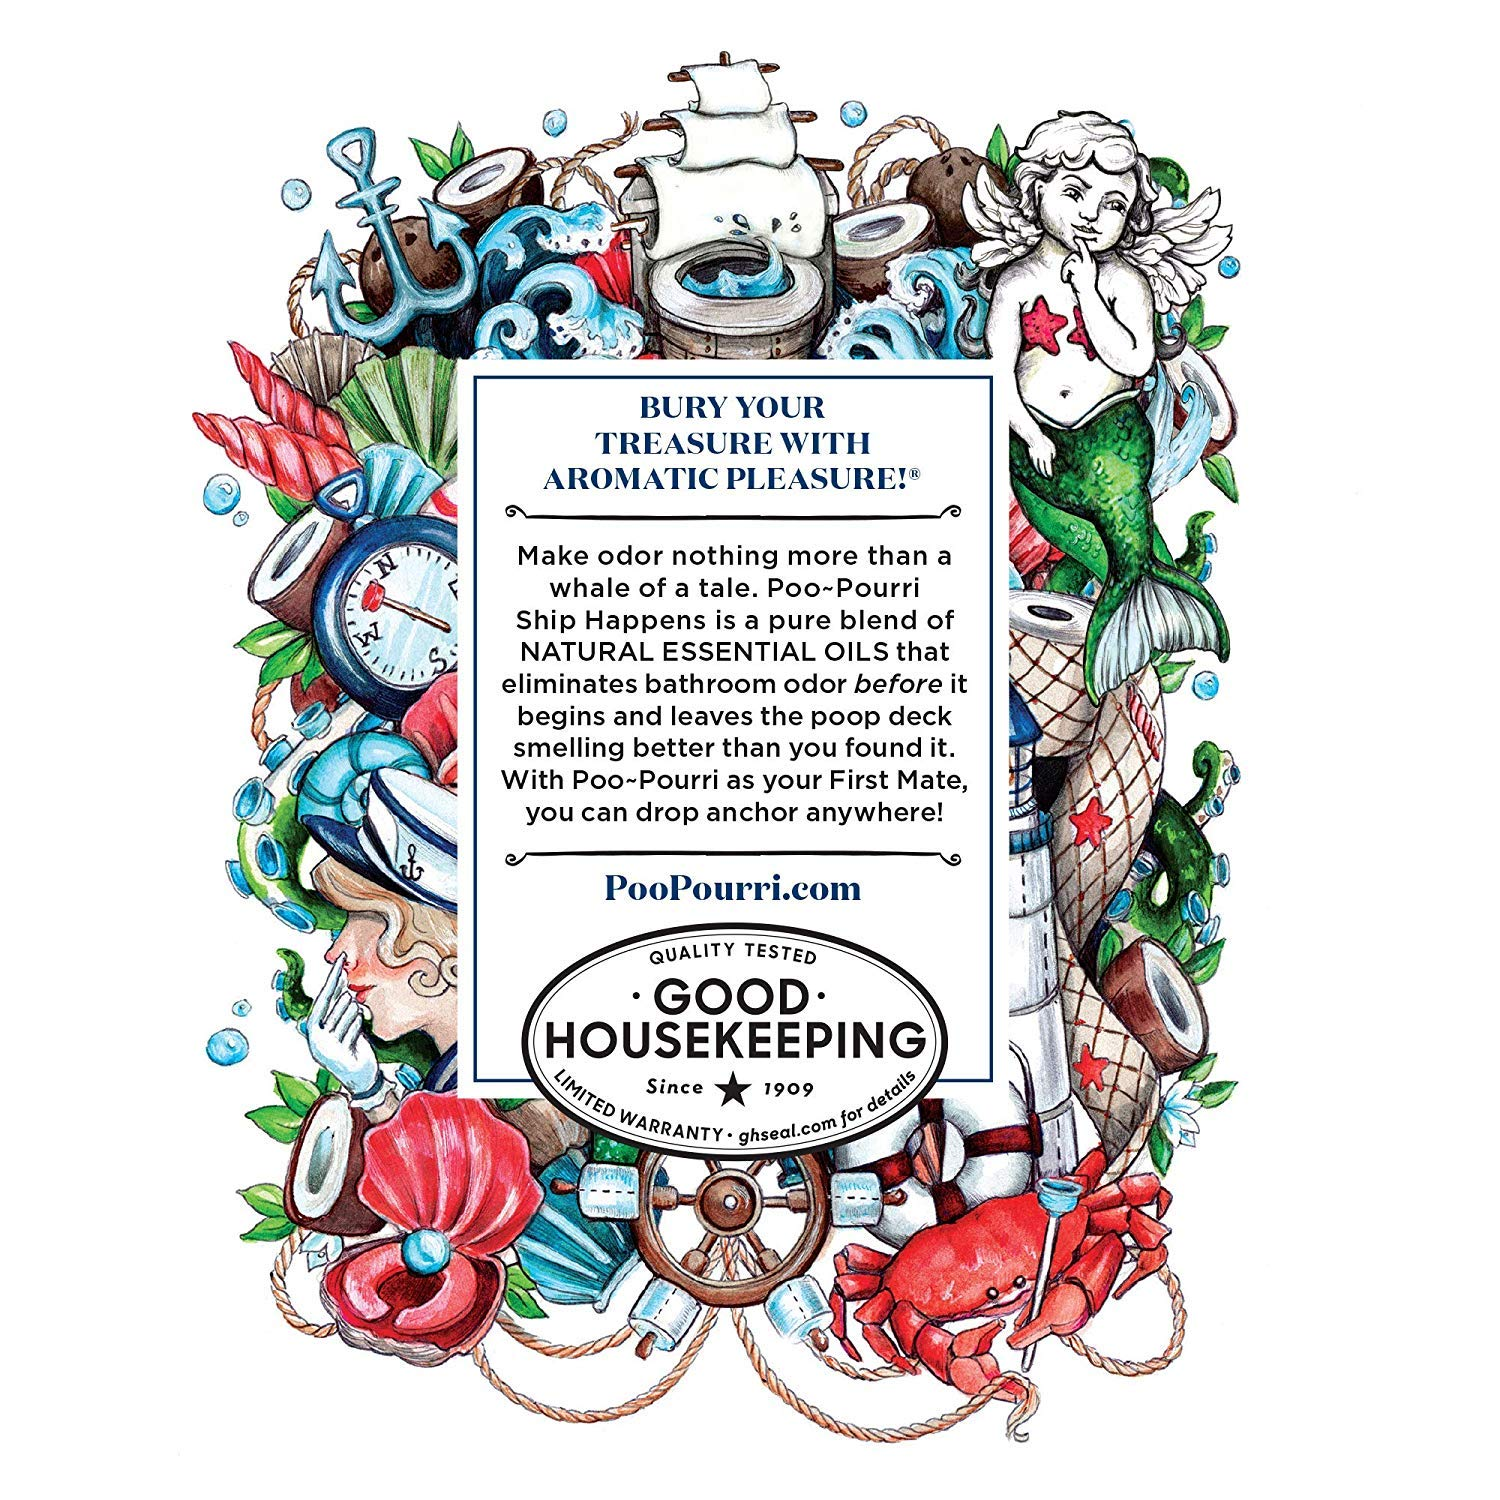 Poo-Pourri in A Pinch Pack Toilet Spray Gift Set, 5 Pack 10 mL, and 1.4 Ounce Ship Happens Bottle by Poo-Pourri (Image #6)